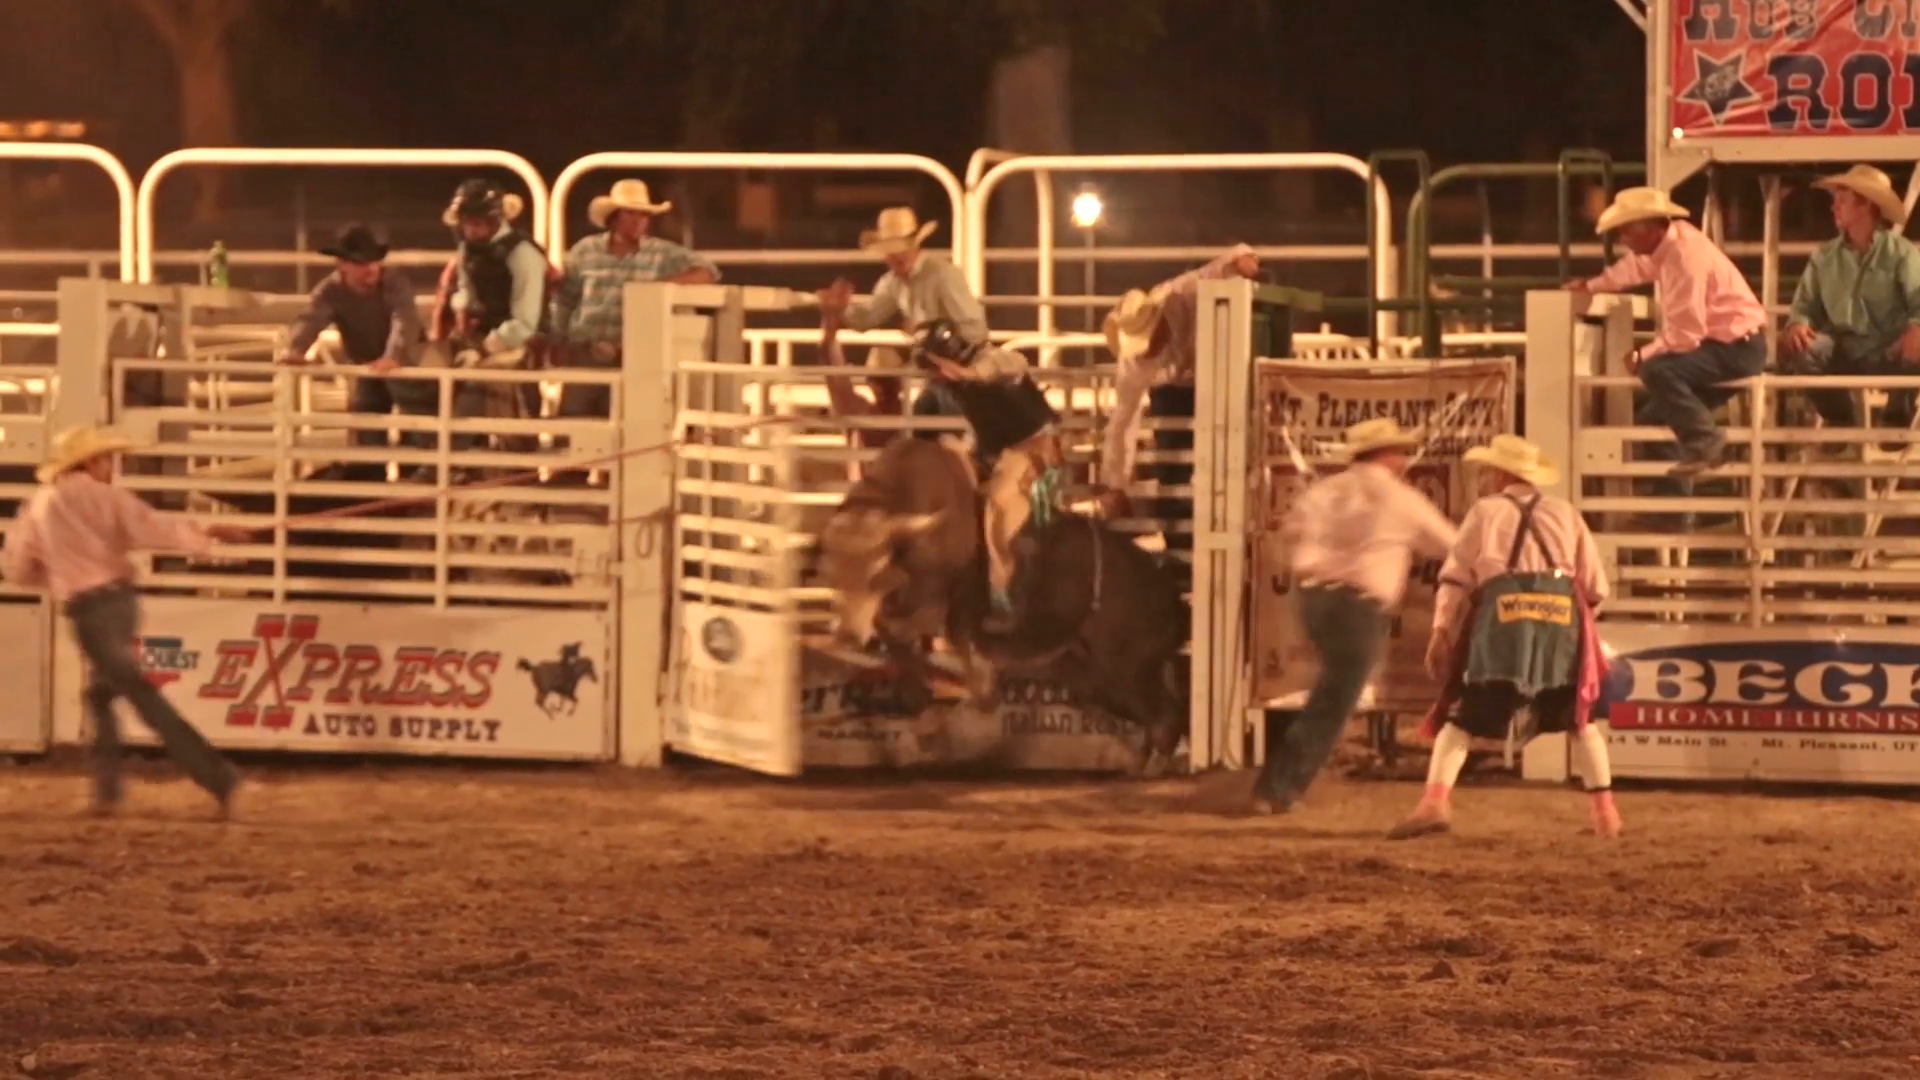 Rodeo bull rider attacked slow motion. Rural fair, rodeo and community  celebration for 4th, fourth of July. Small town fun. Competitors riding  bulls, horses PlusPng.com  - Rodeo PNG HD